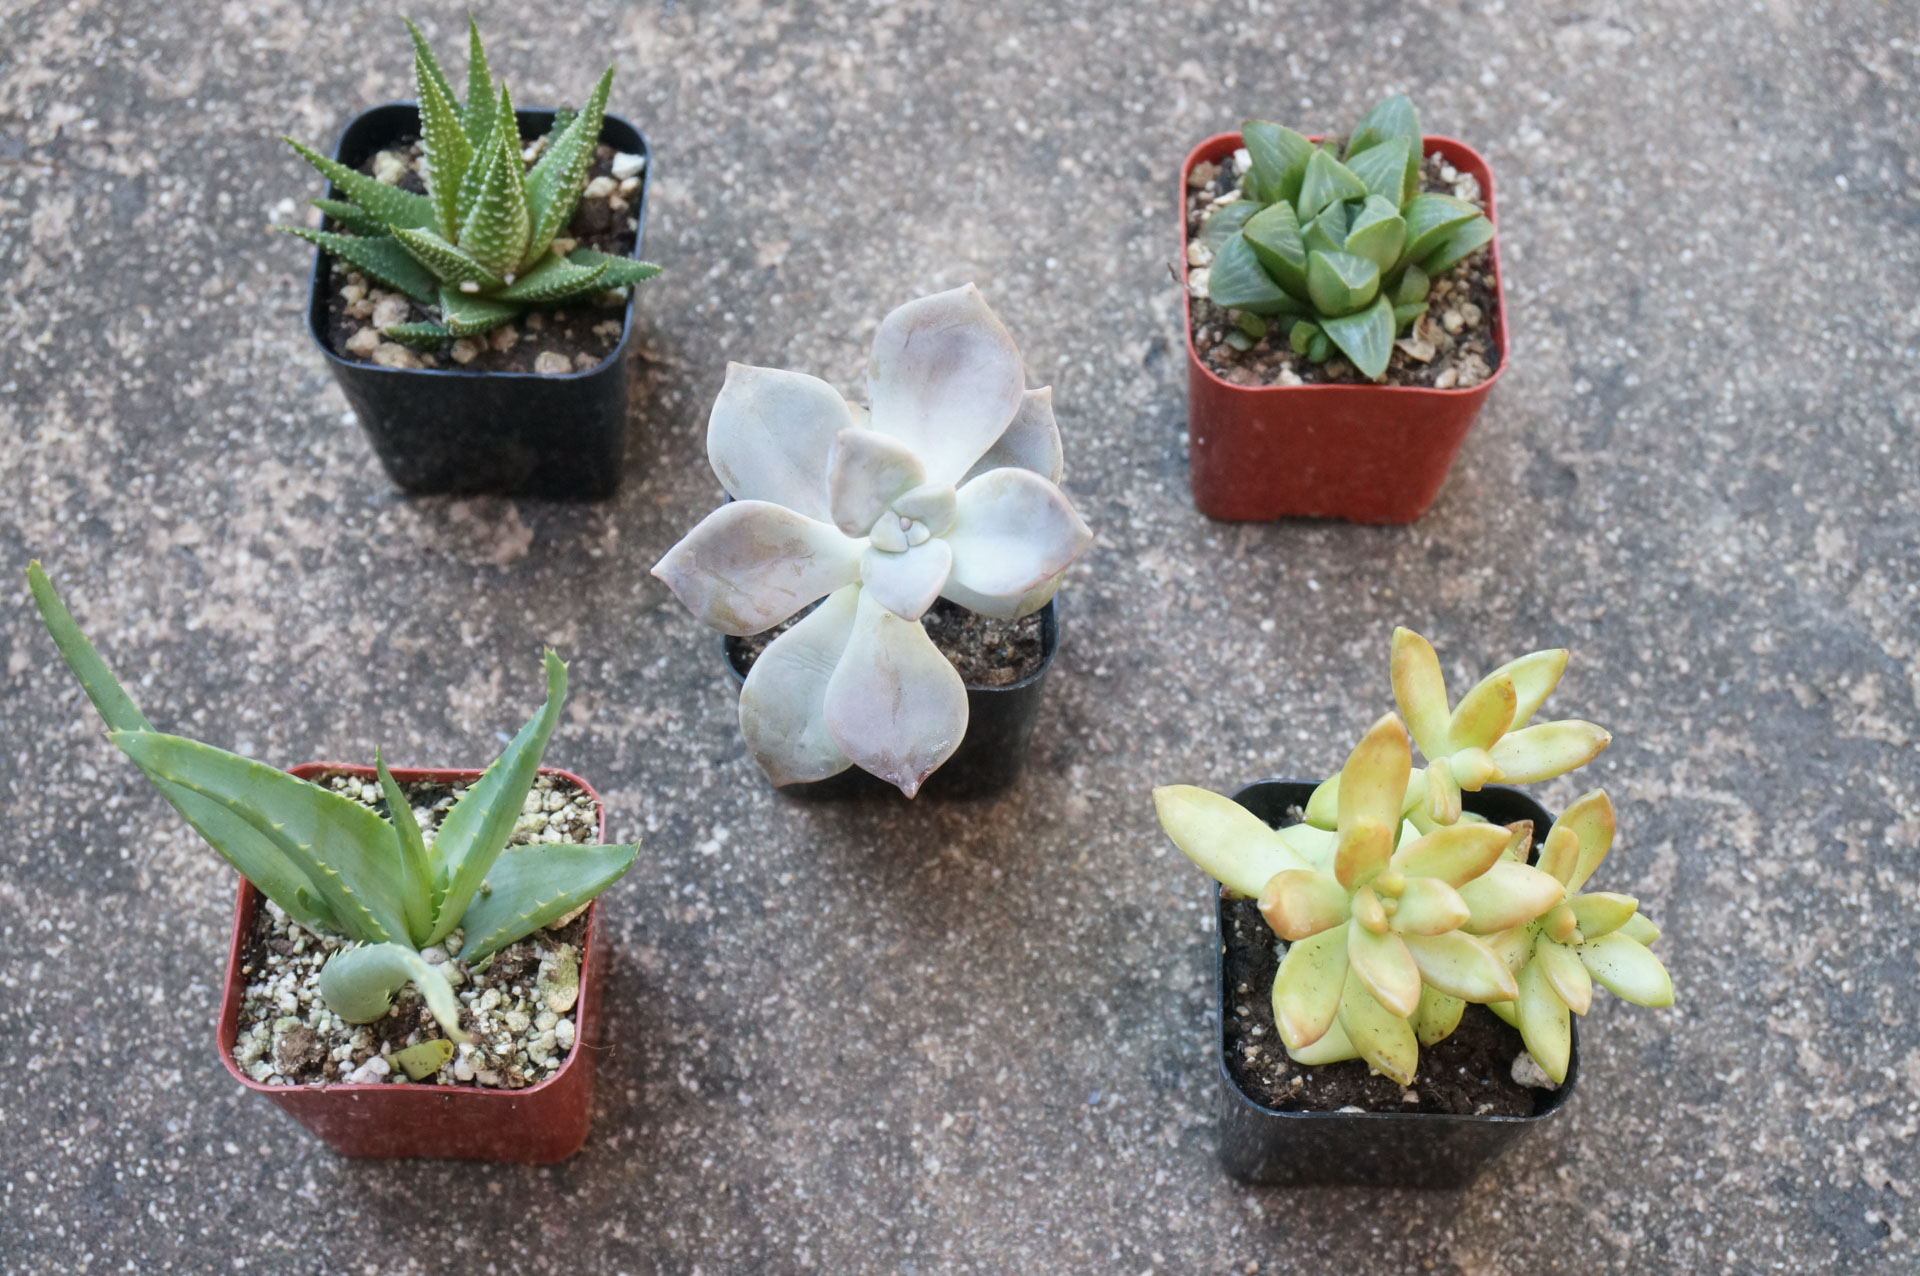 1560782869 476 tips for planting a succulent garden - Tips for Planting a Succulent Garden